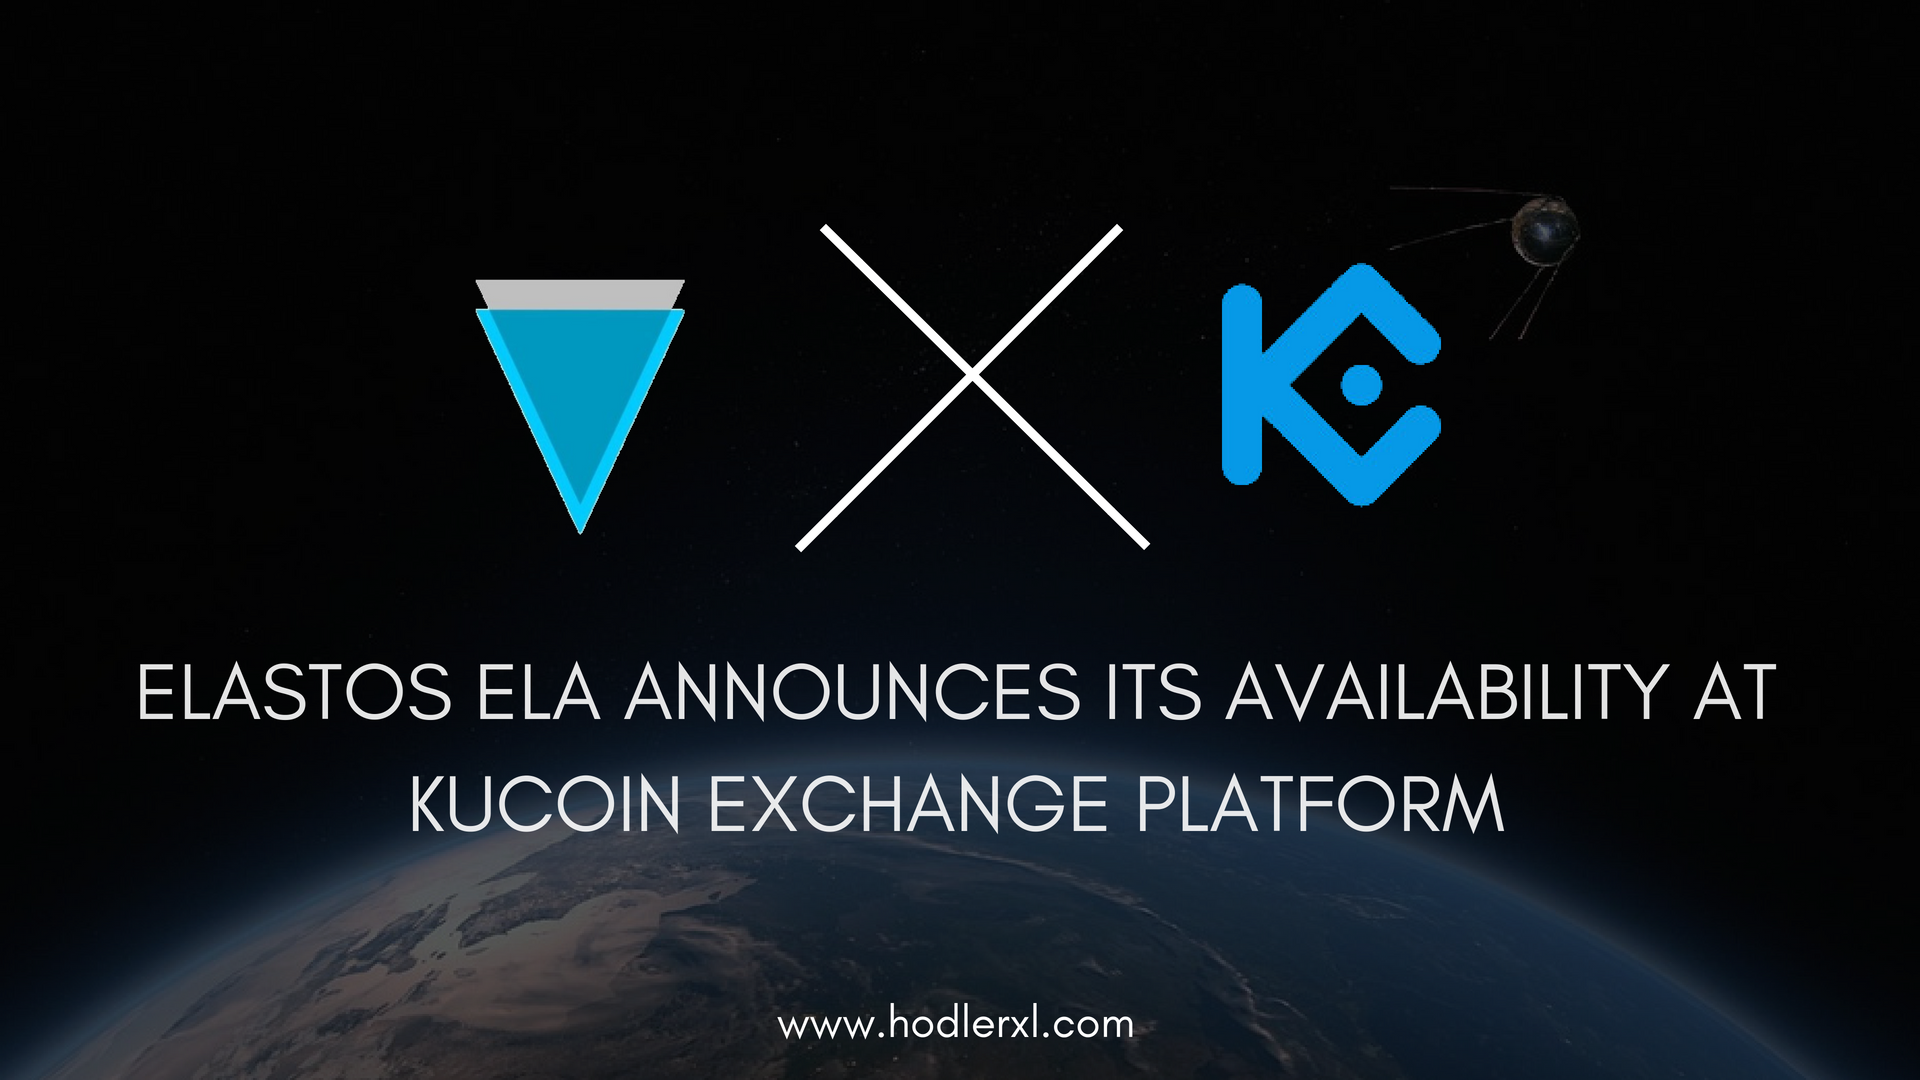 Elastos ELA Announces Availability KuCoin Exchange Platform